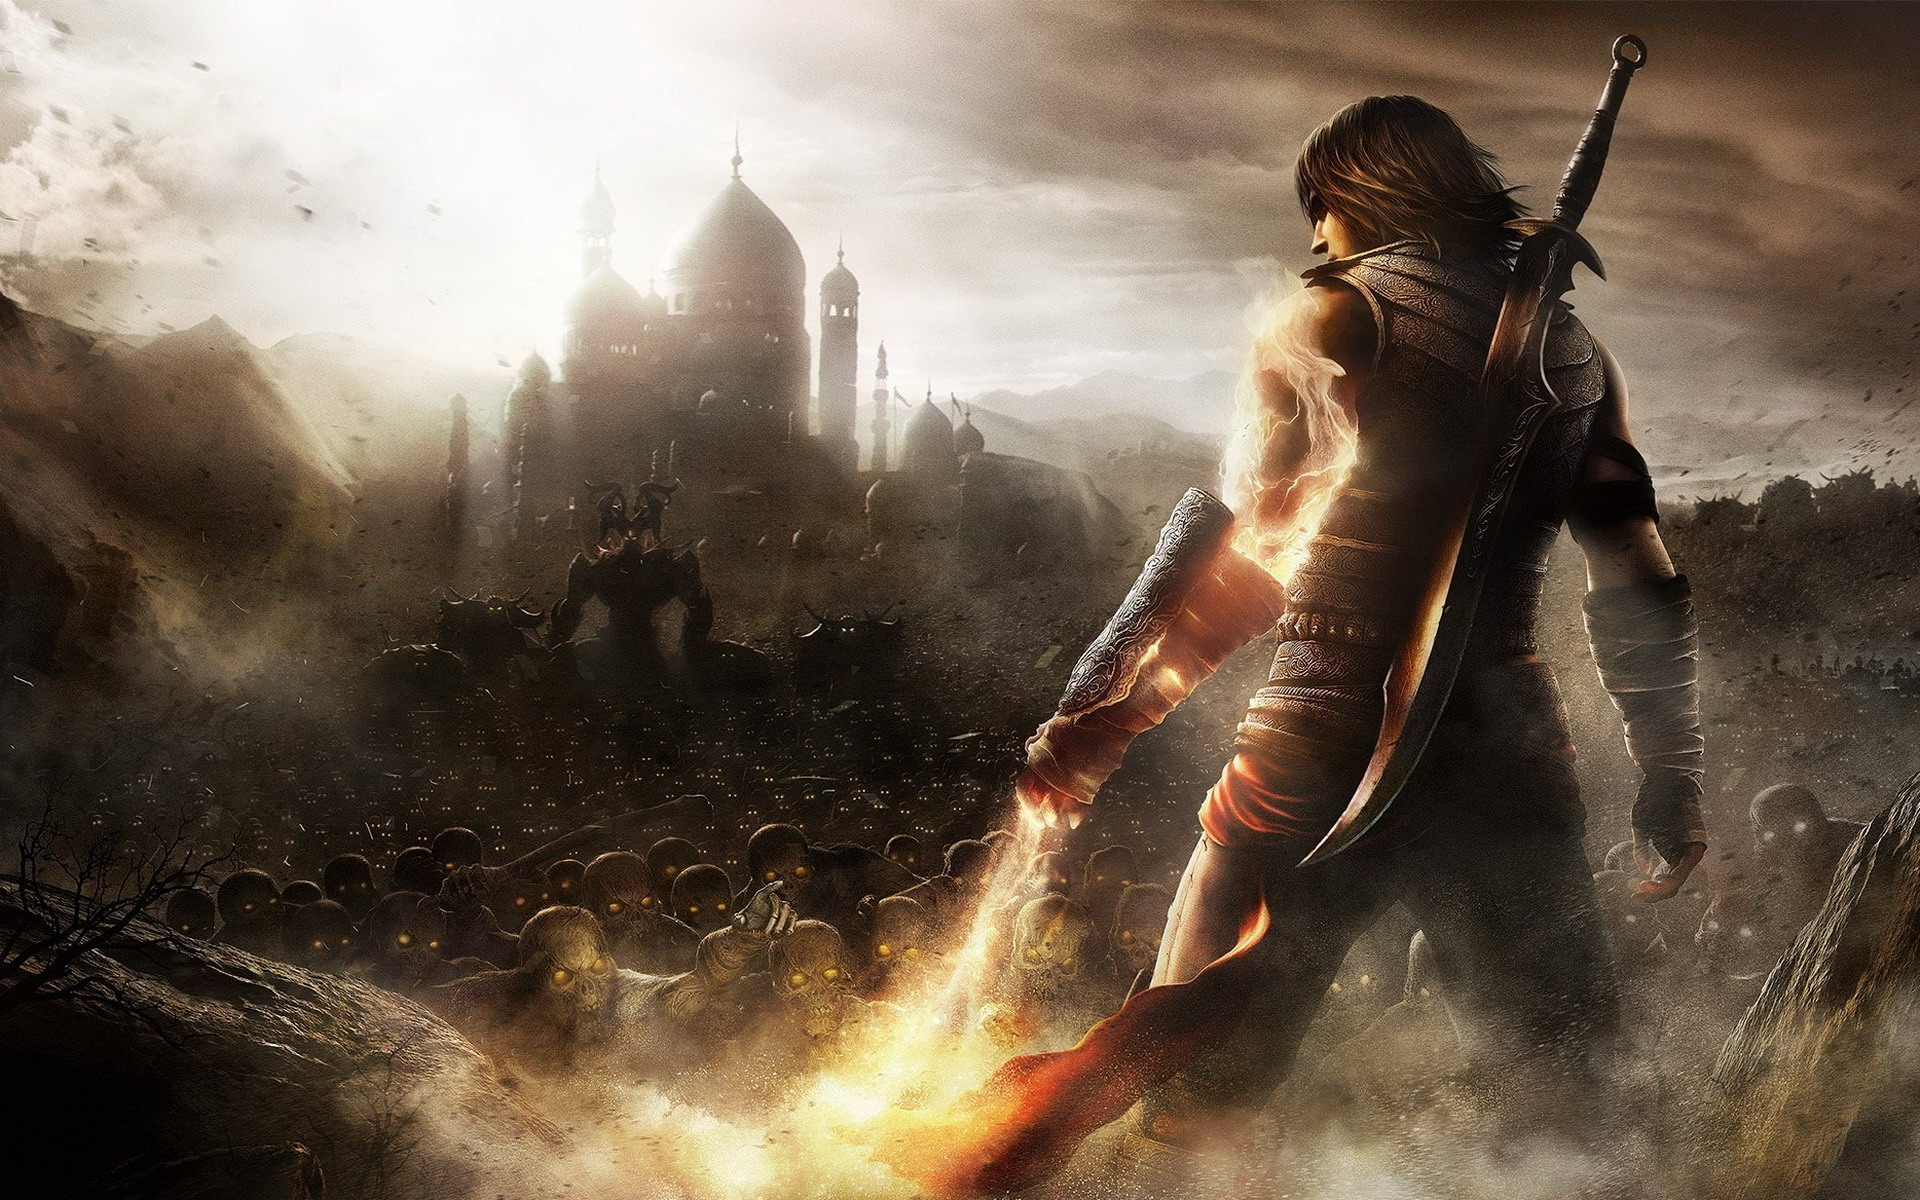 Арт к игре Prince of Persia: The Forgotten Sands